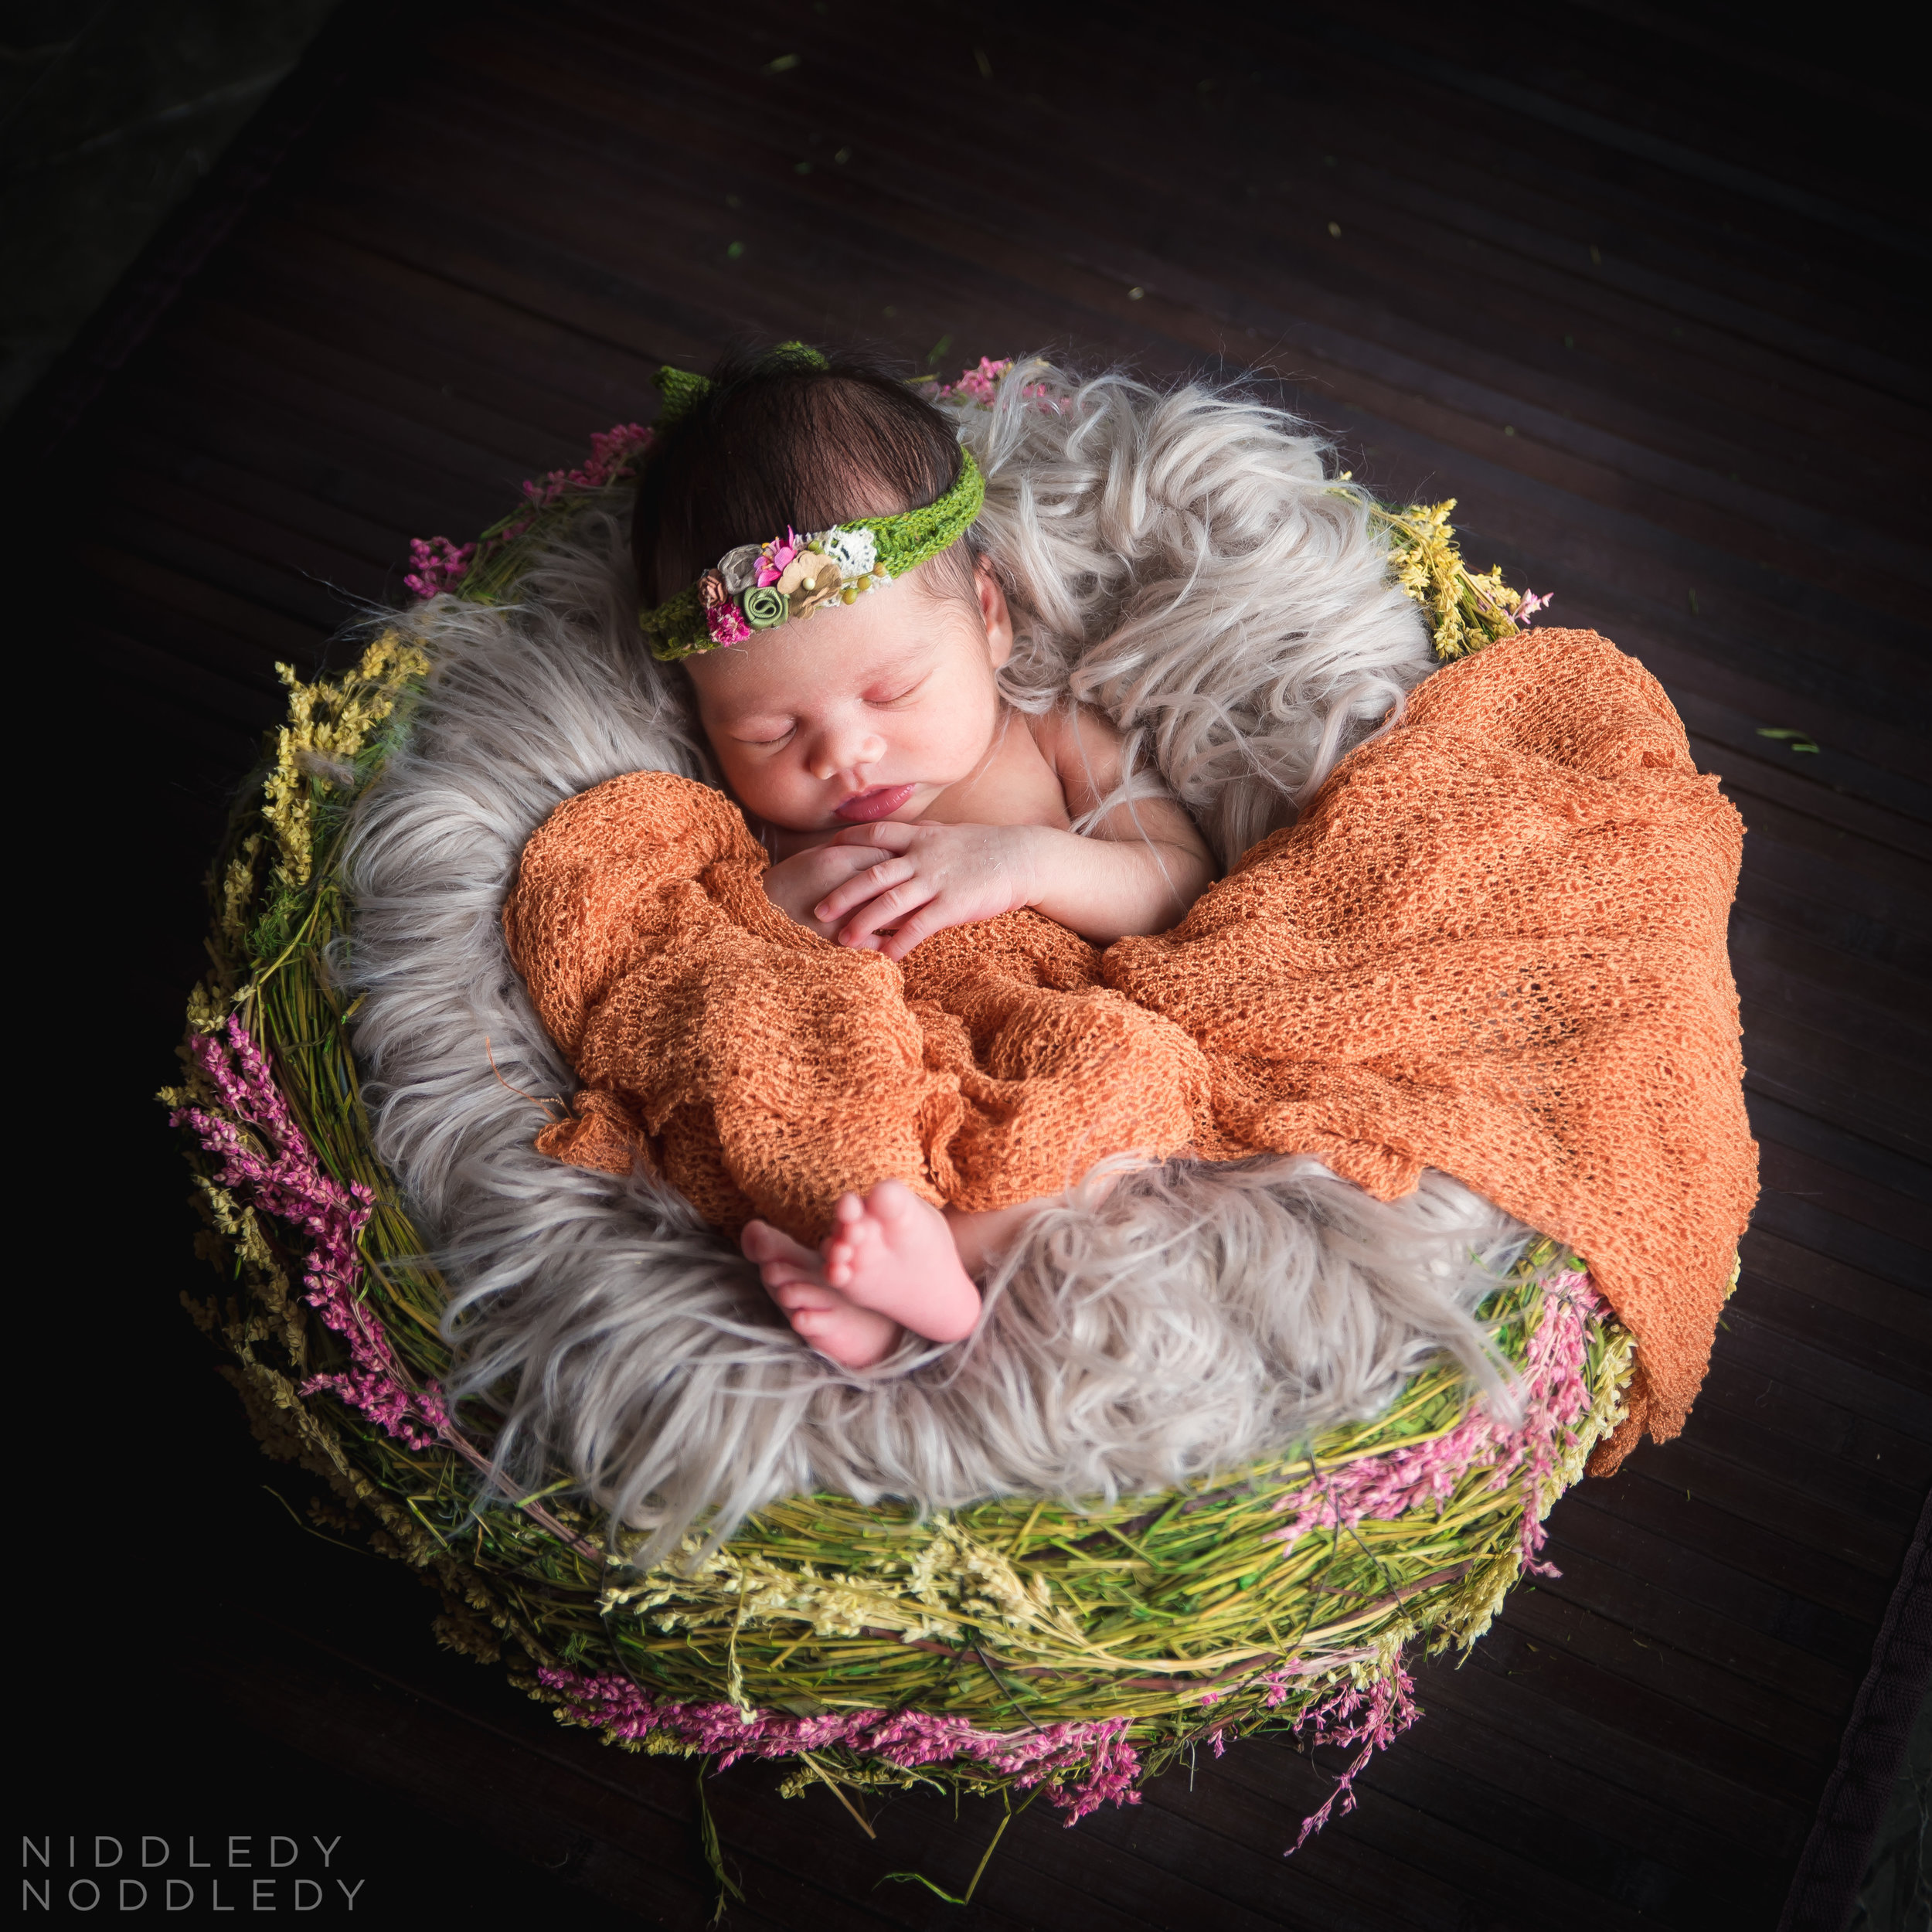 Amarra Newborn Photoshoot ❤ NiddledyNoddledy.com ~ Bumps to Babies Photography, Kolkata - 12.jpg